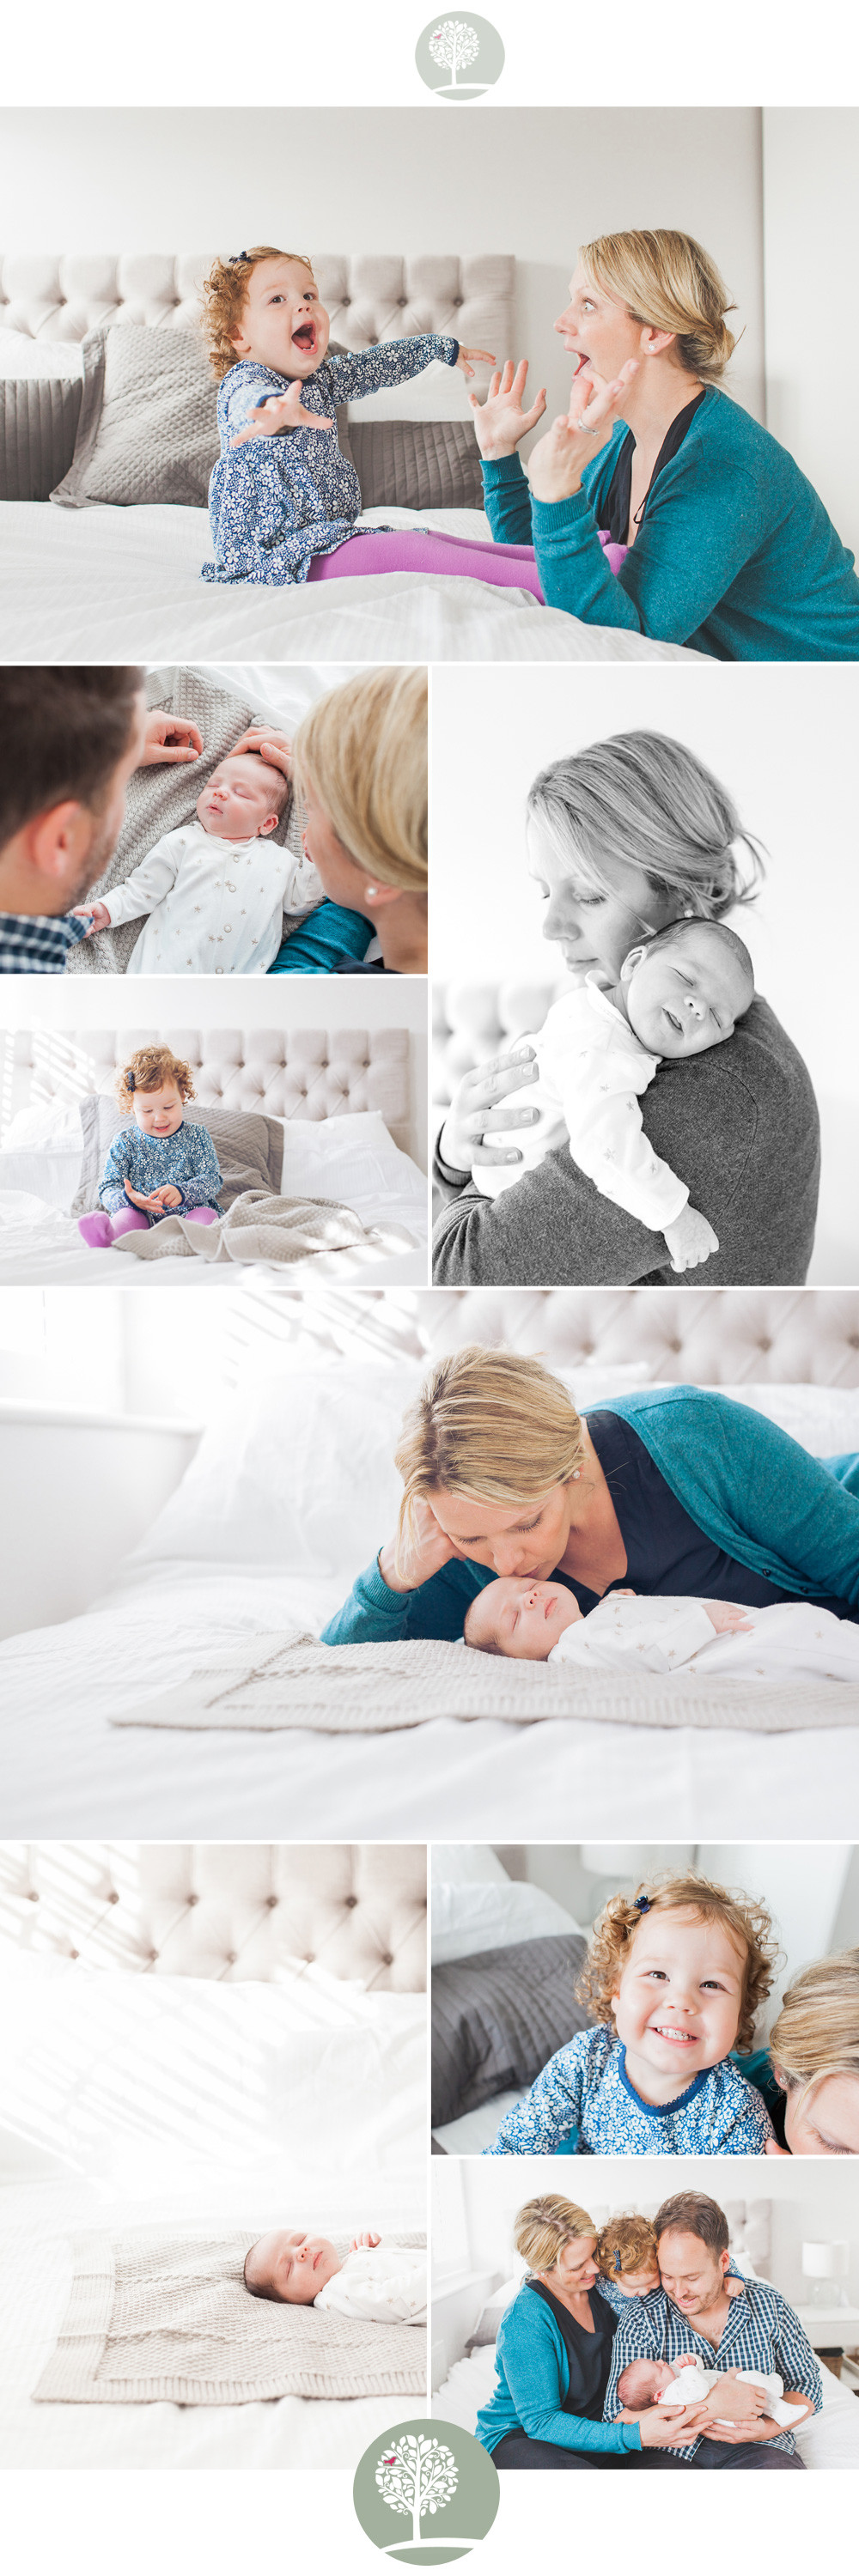 Baby Photography Surrey | Photographic styles - what are your options? Lifestyle, documentary or classic?